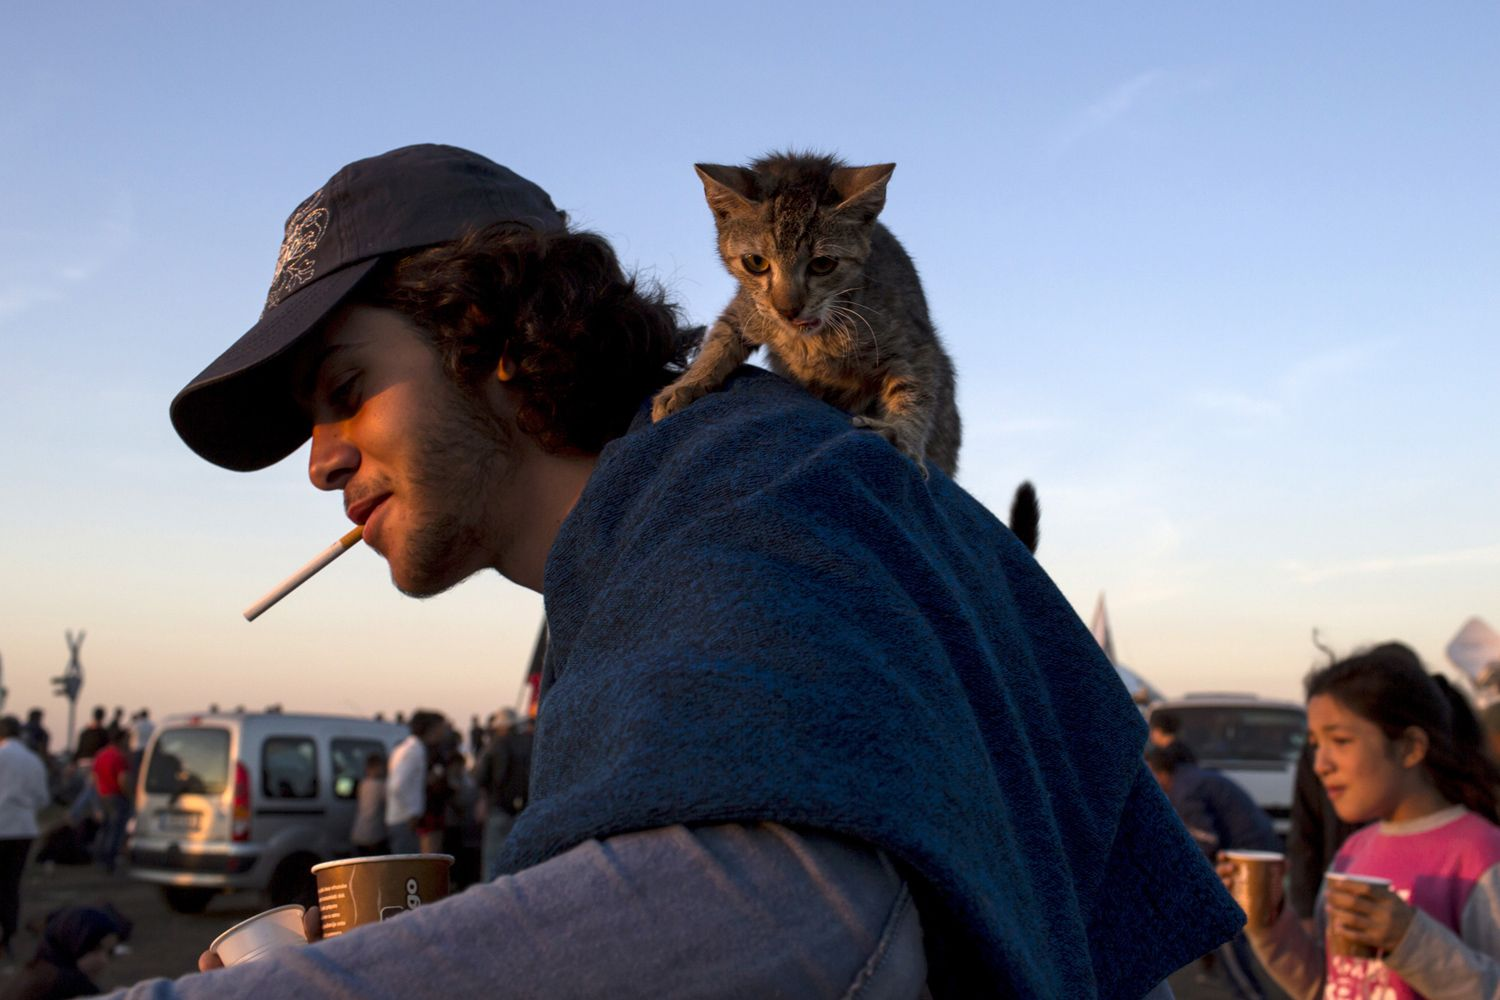 Omer, from Syria, carries his cat, Johnny, on his shoulders at a collection point for migrants in the village of Roszke, Hungary